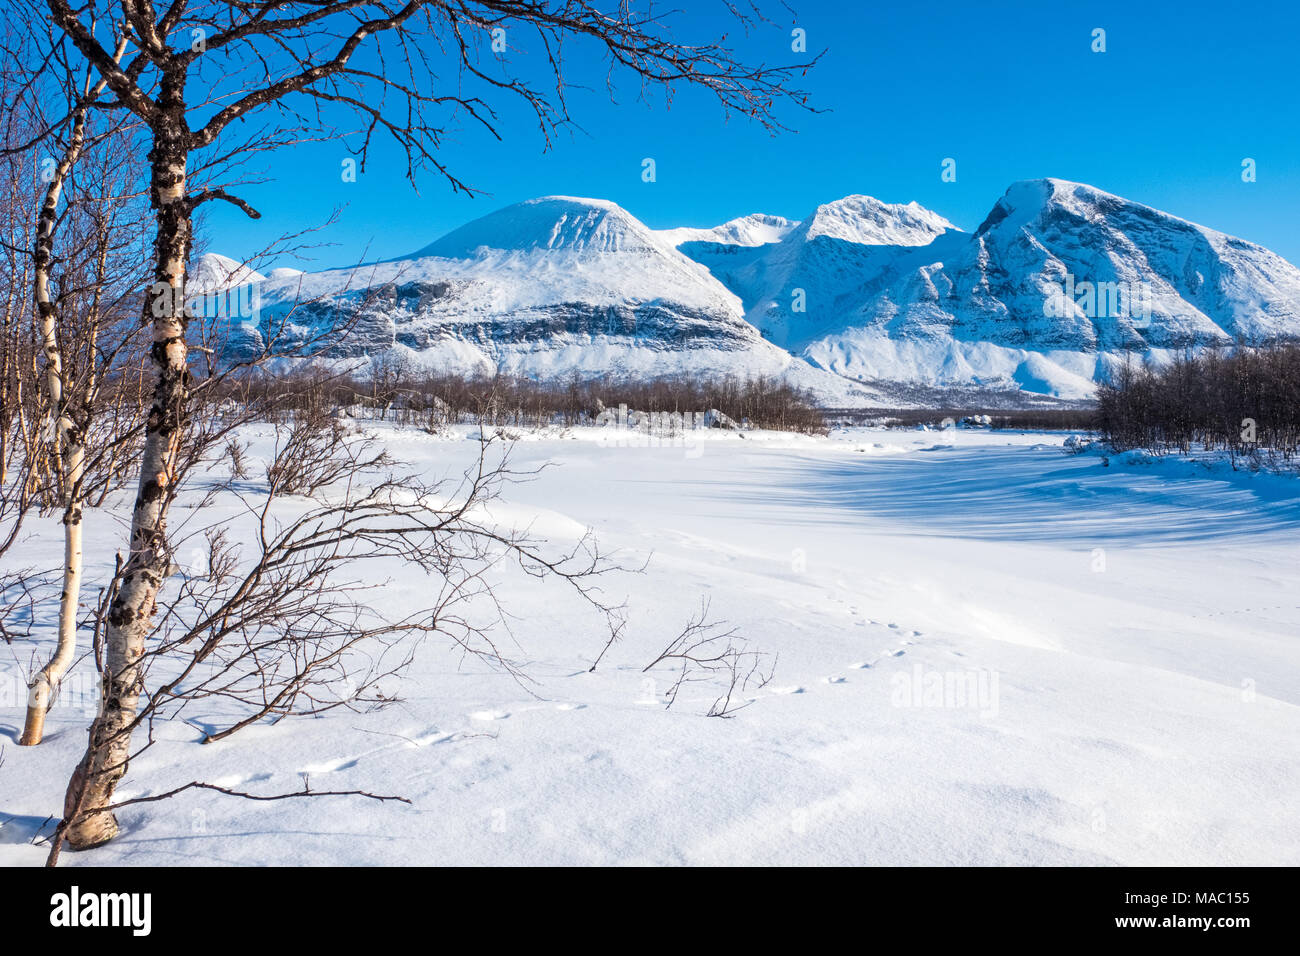 The Akka mountains in the Sarak  National Park, winter, northern Sweden - Stock Image